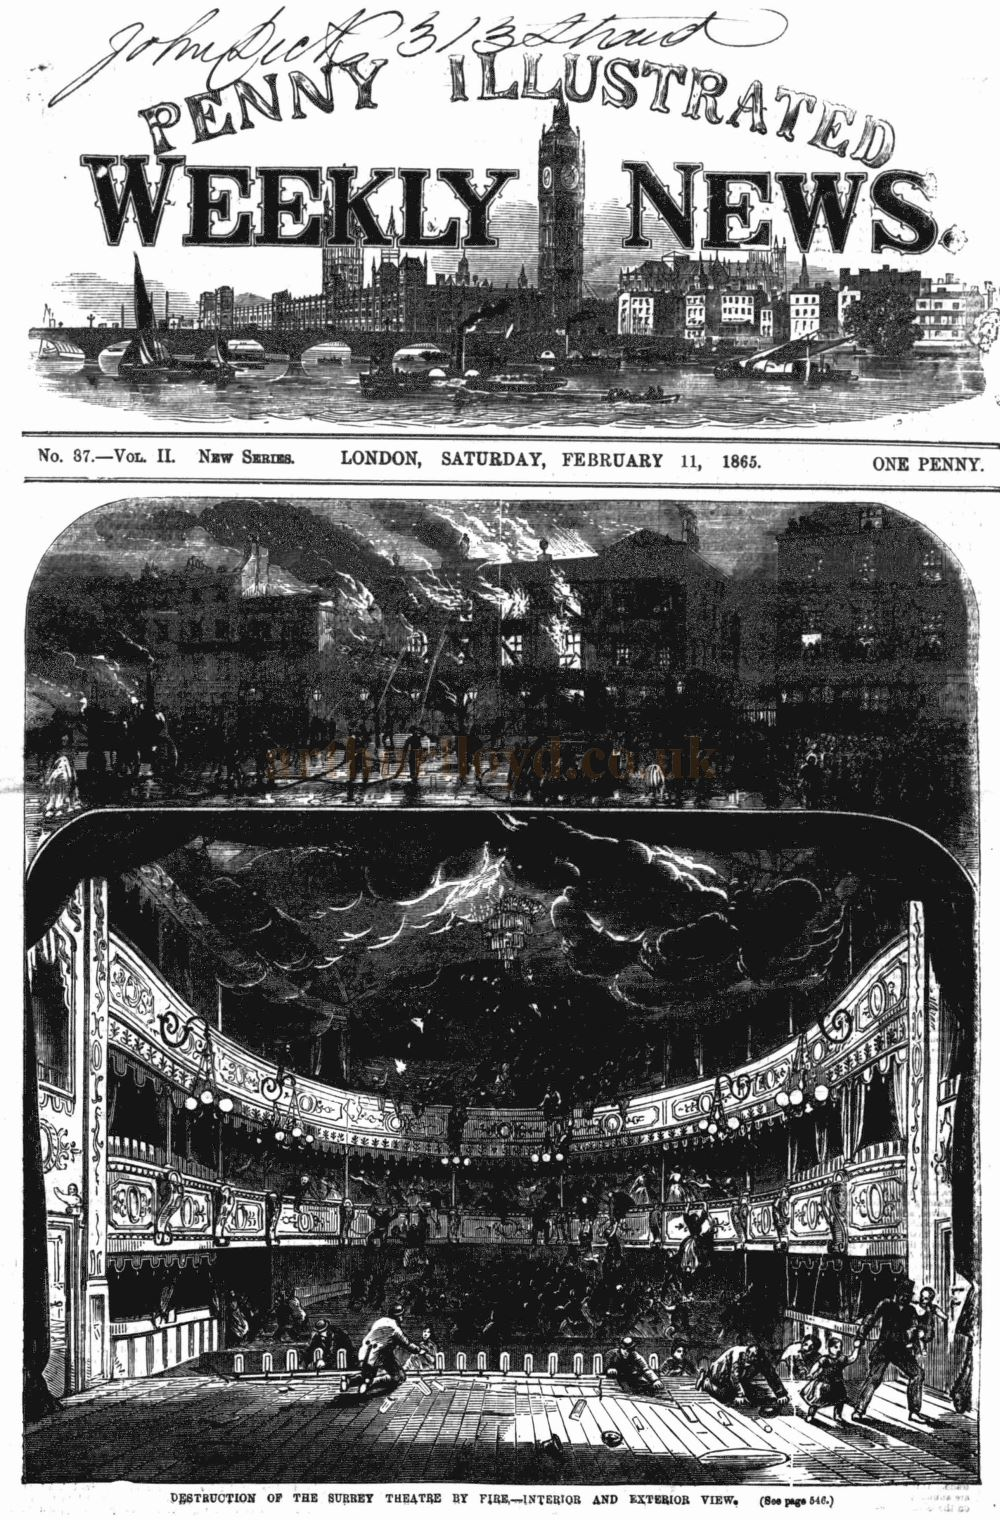 Destruction of the Surrey Theatre by fire - Interior and Exterior View - The Penny Illustrated, 11th February 1865.